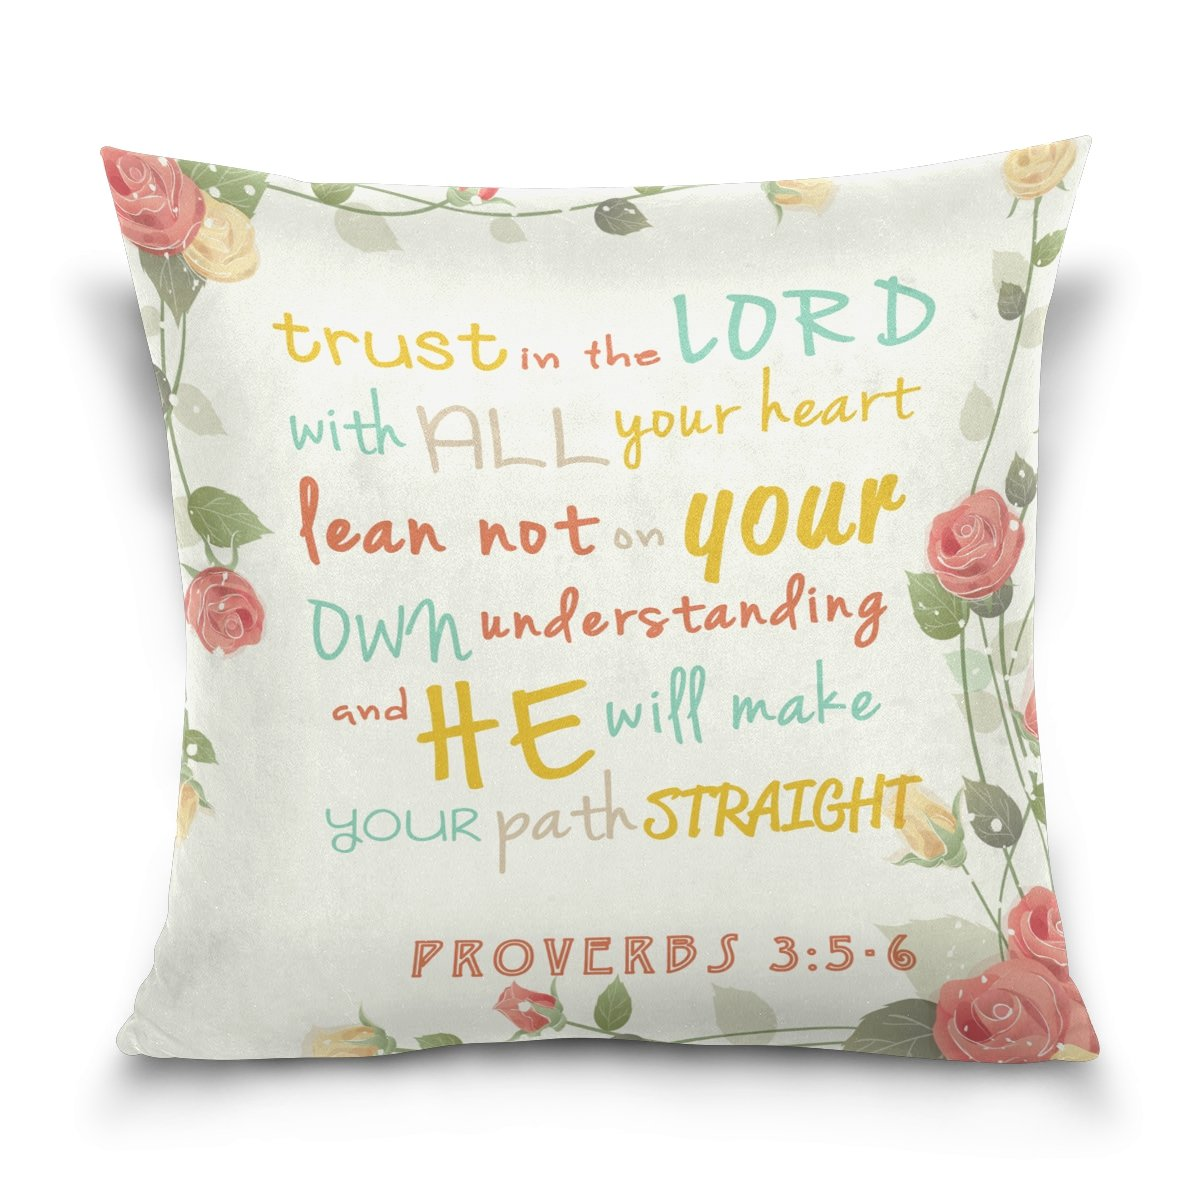 Double Sided Trust in The Lord Bible Verse Red Rose Cotton Velvet Throw pillow 18x18 Inch Zipper pillowcase for Decorative Pillows by ALAZA